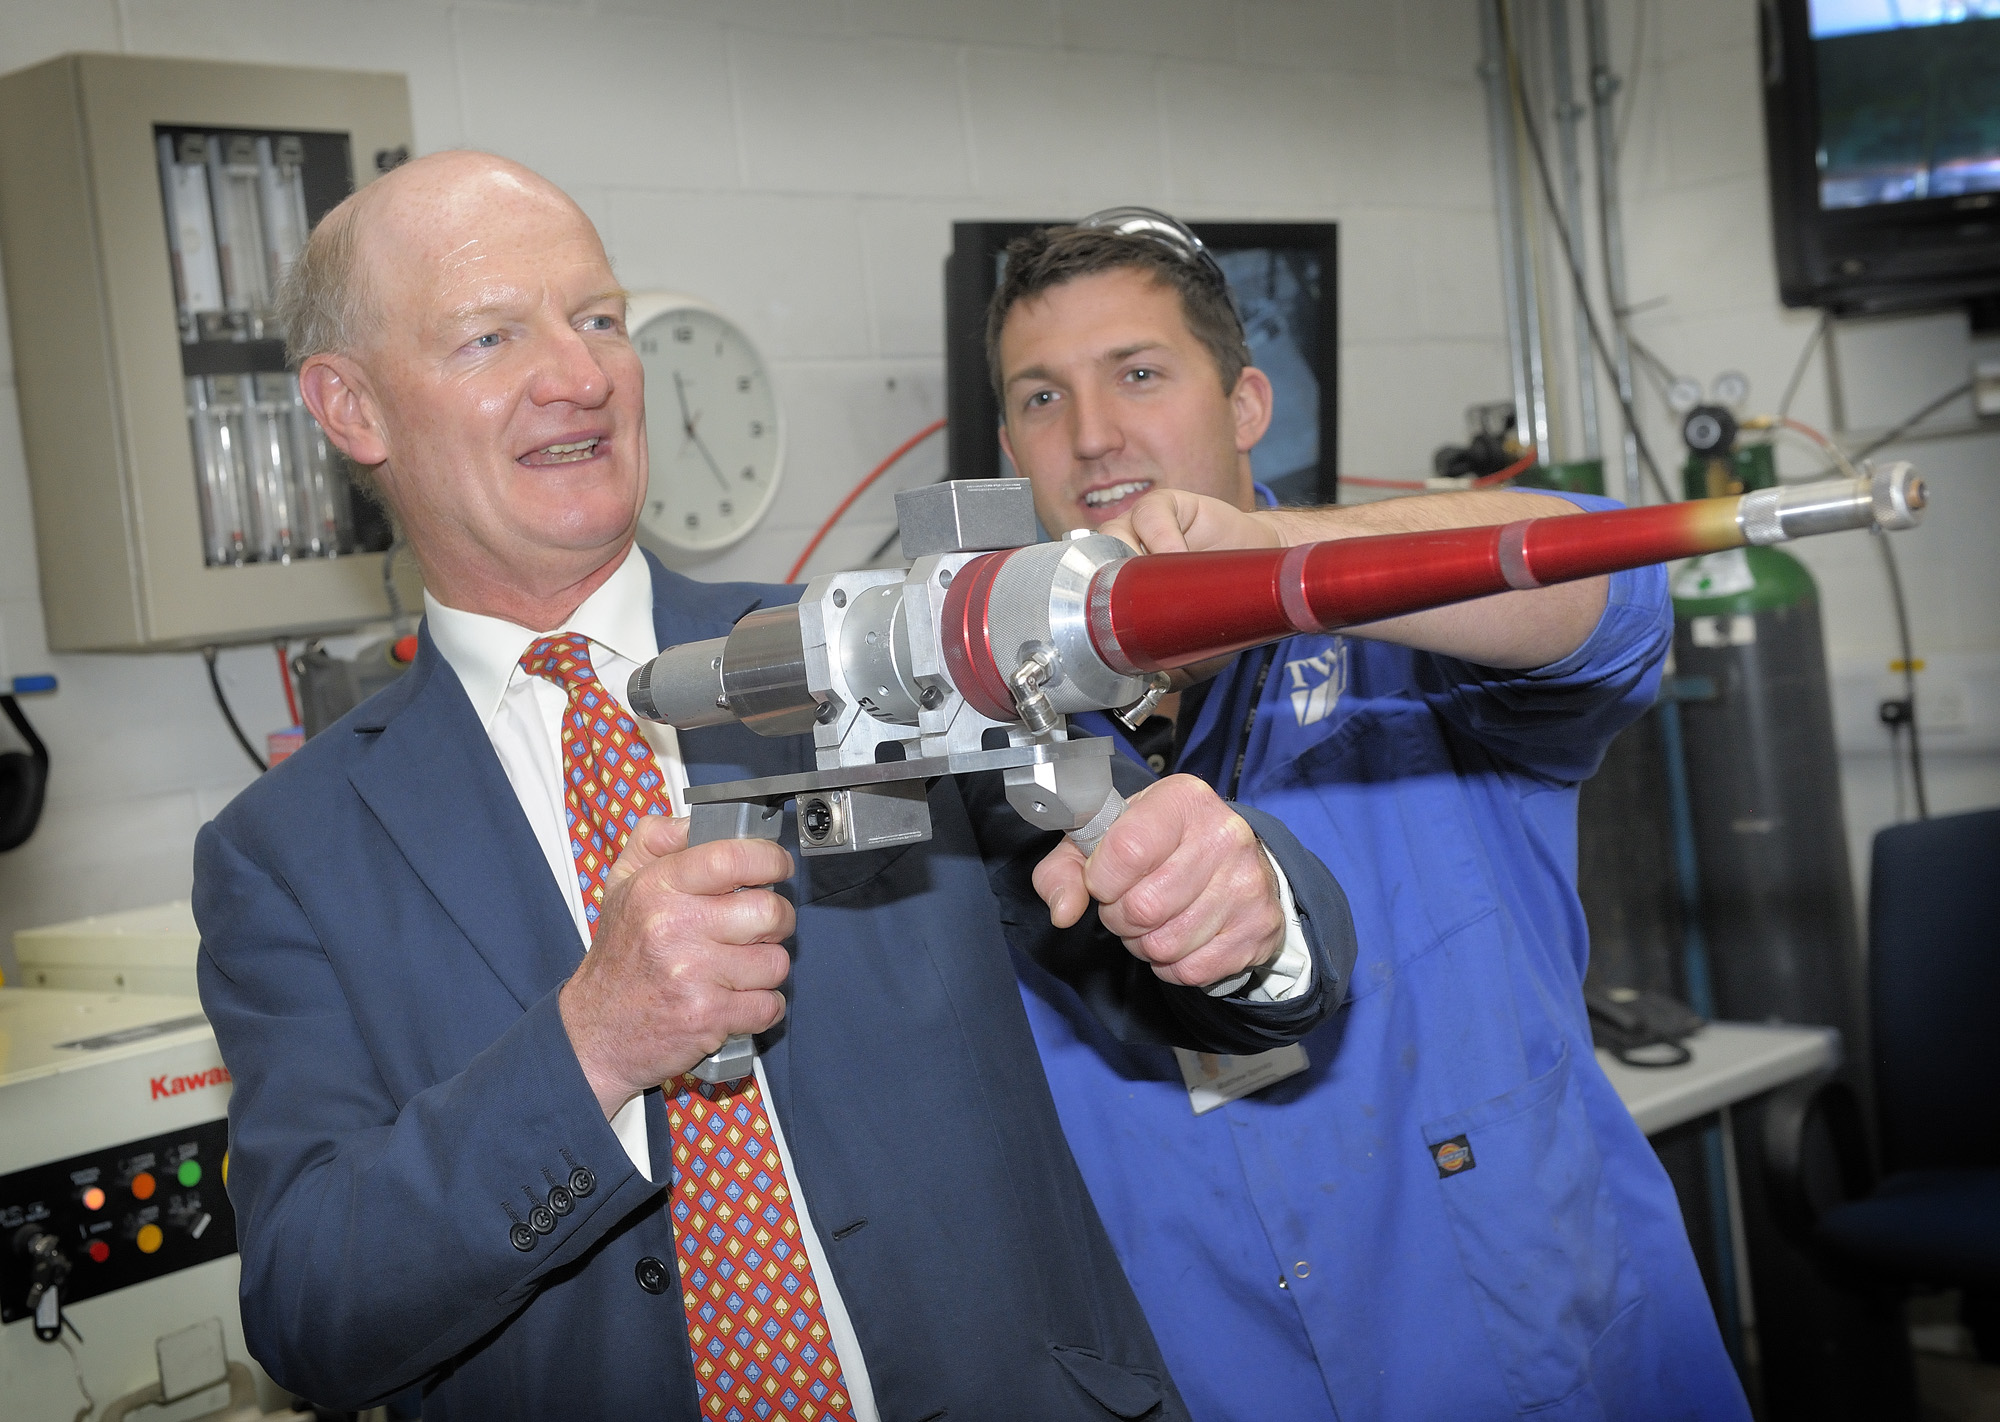 TWI welcomes Rt Hon David Willetts MP to view the progress of the new postgraduate centre